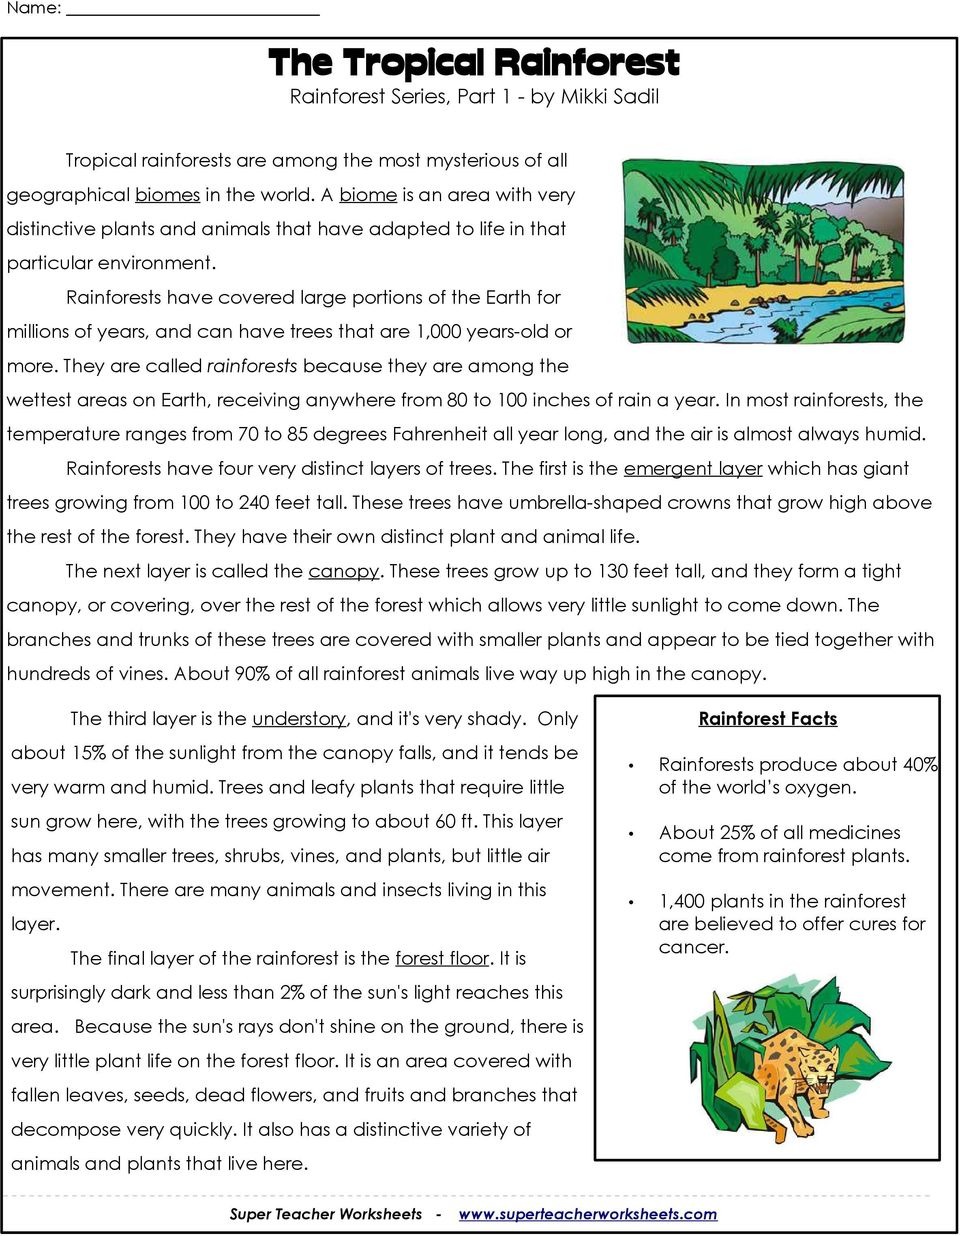 worksheet Tropical Rainforest Worksheet the tropical rainforest series part 1 by mikki sadil pdf rainforests have covered large portions of earth for millions years and can have